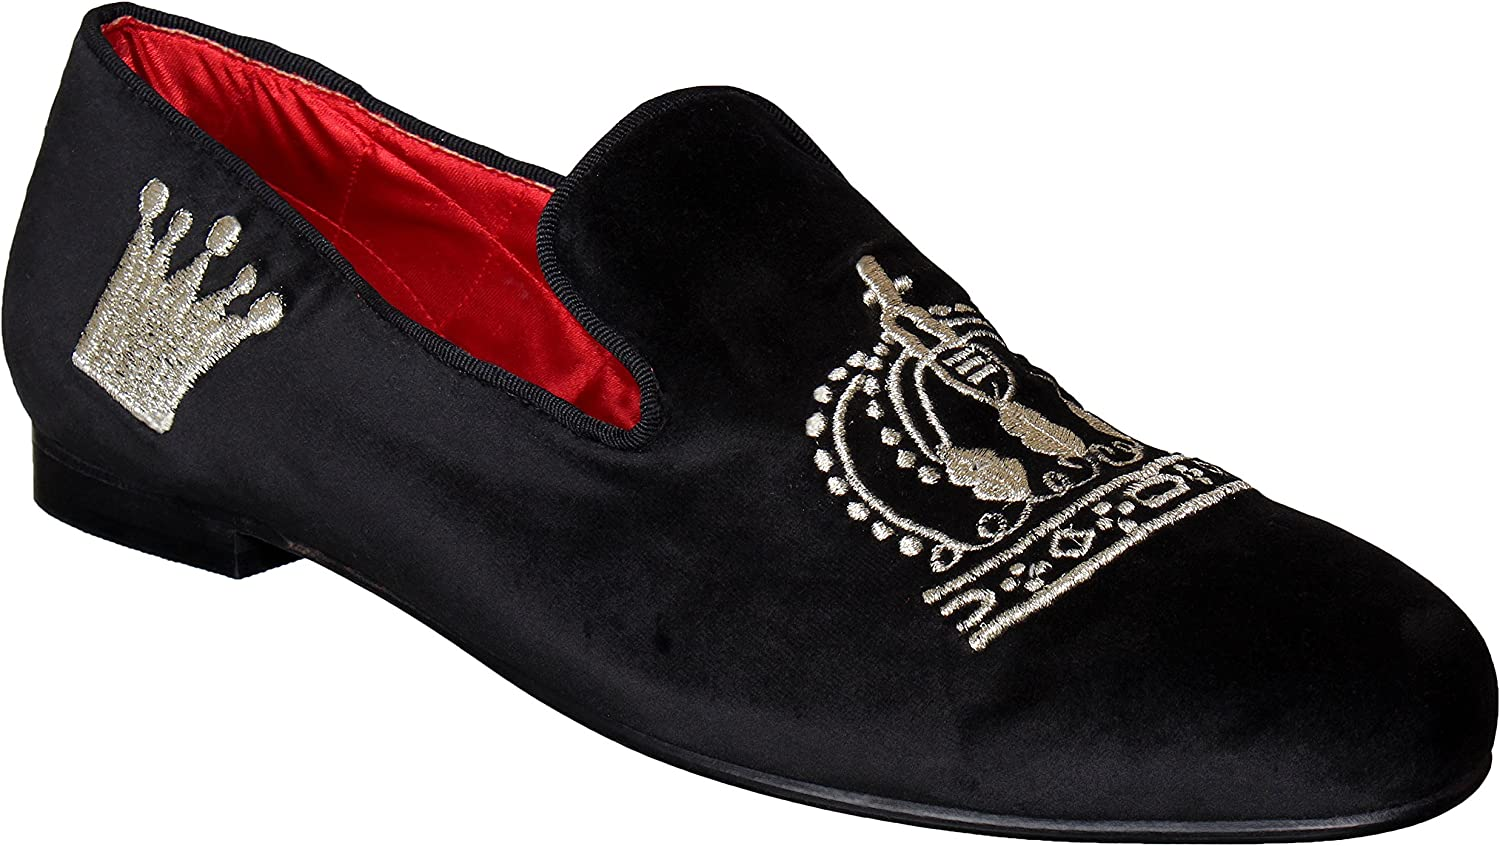 Lozano Black Velvet Slip ons Crown Embroidery Casual shoes Black